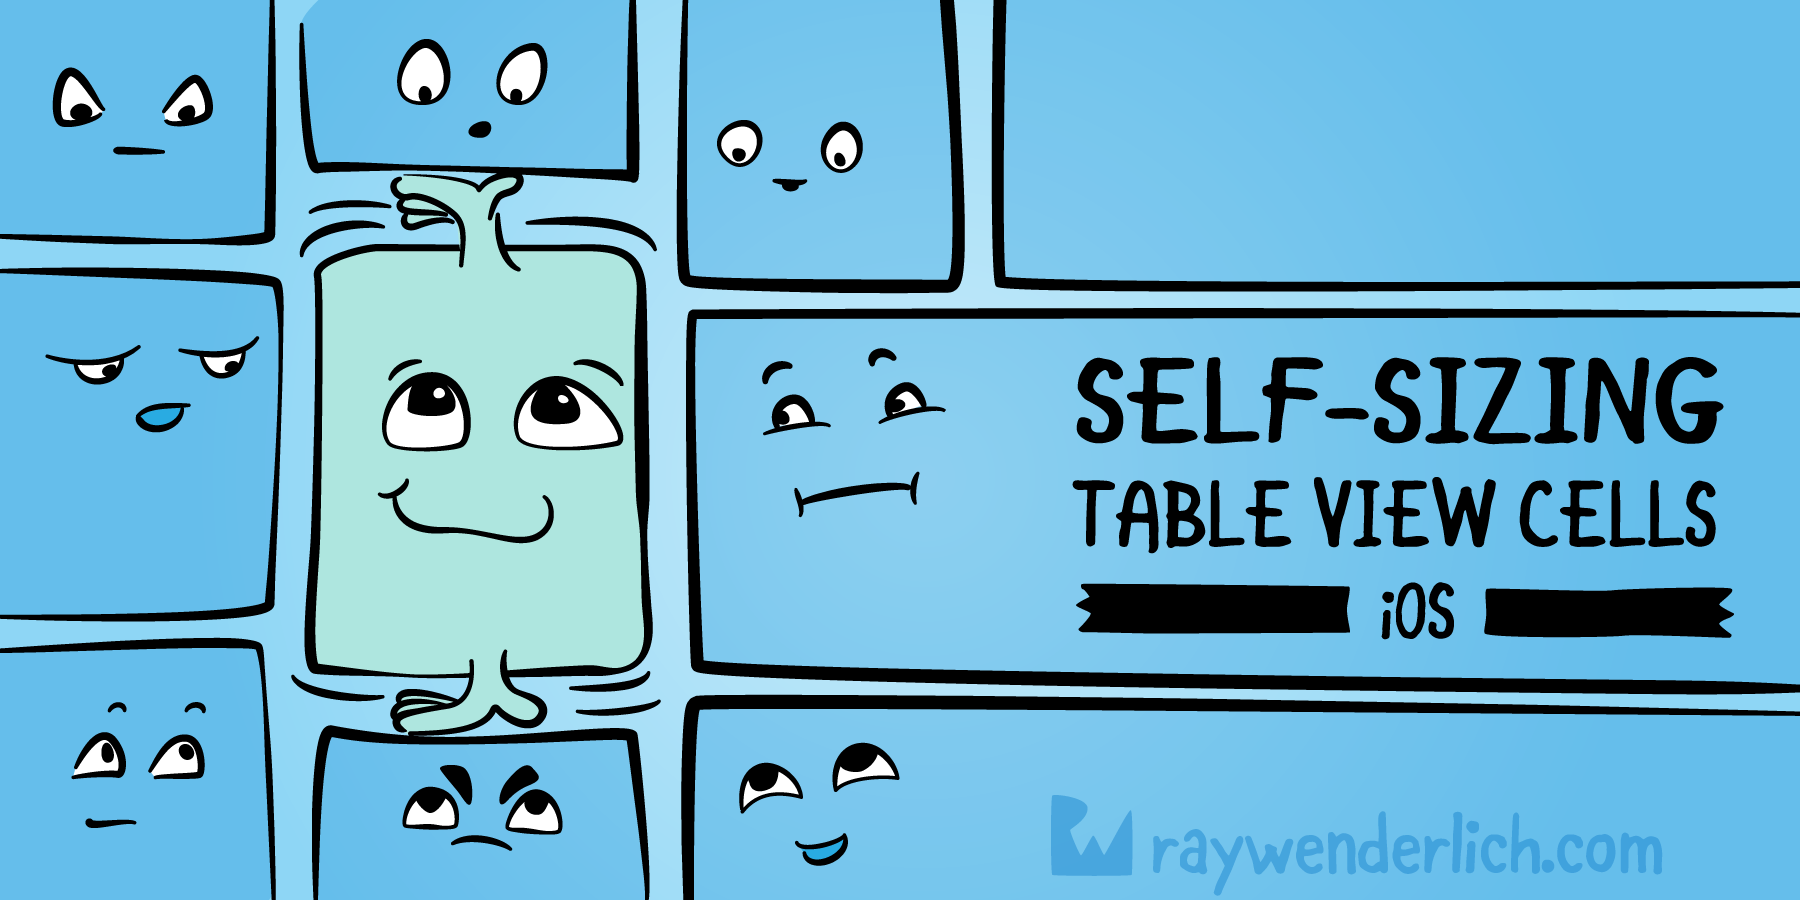 Self-sizing Table View Cells | raywenderlich com